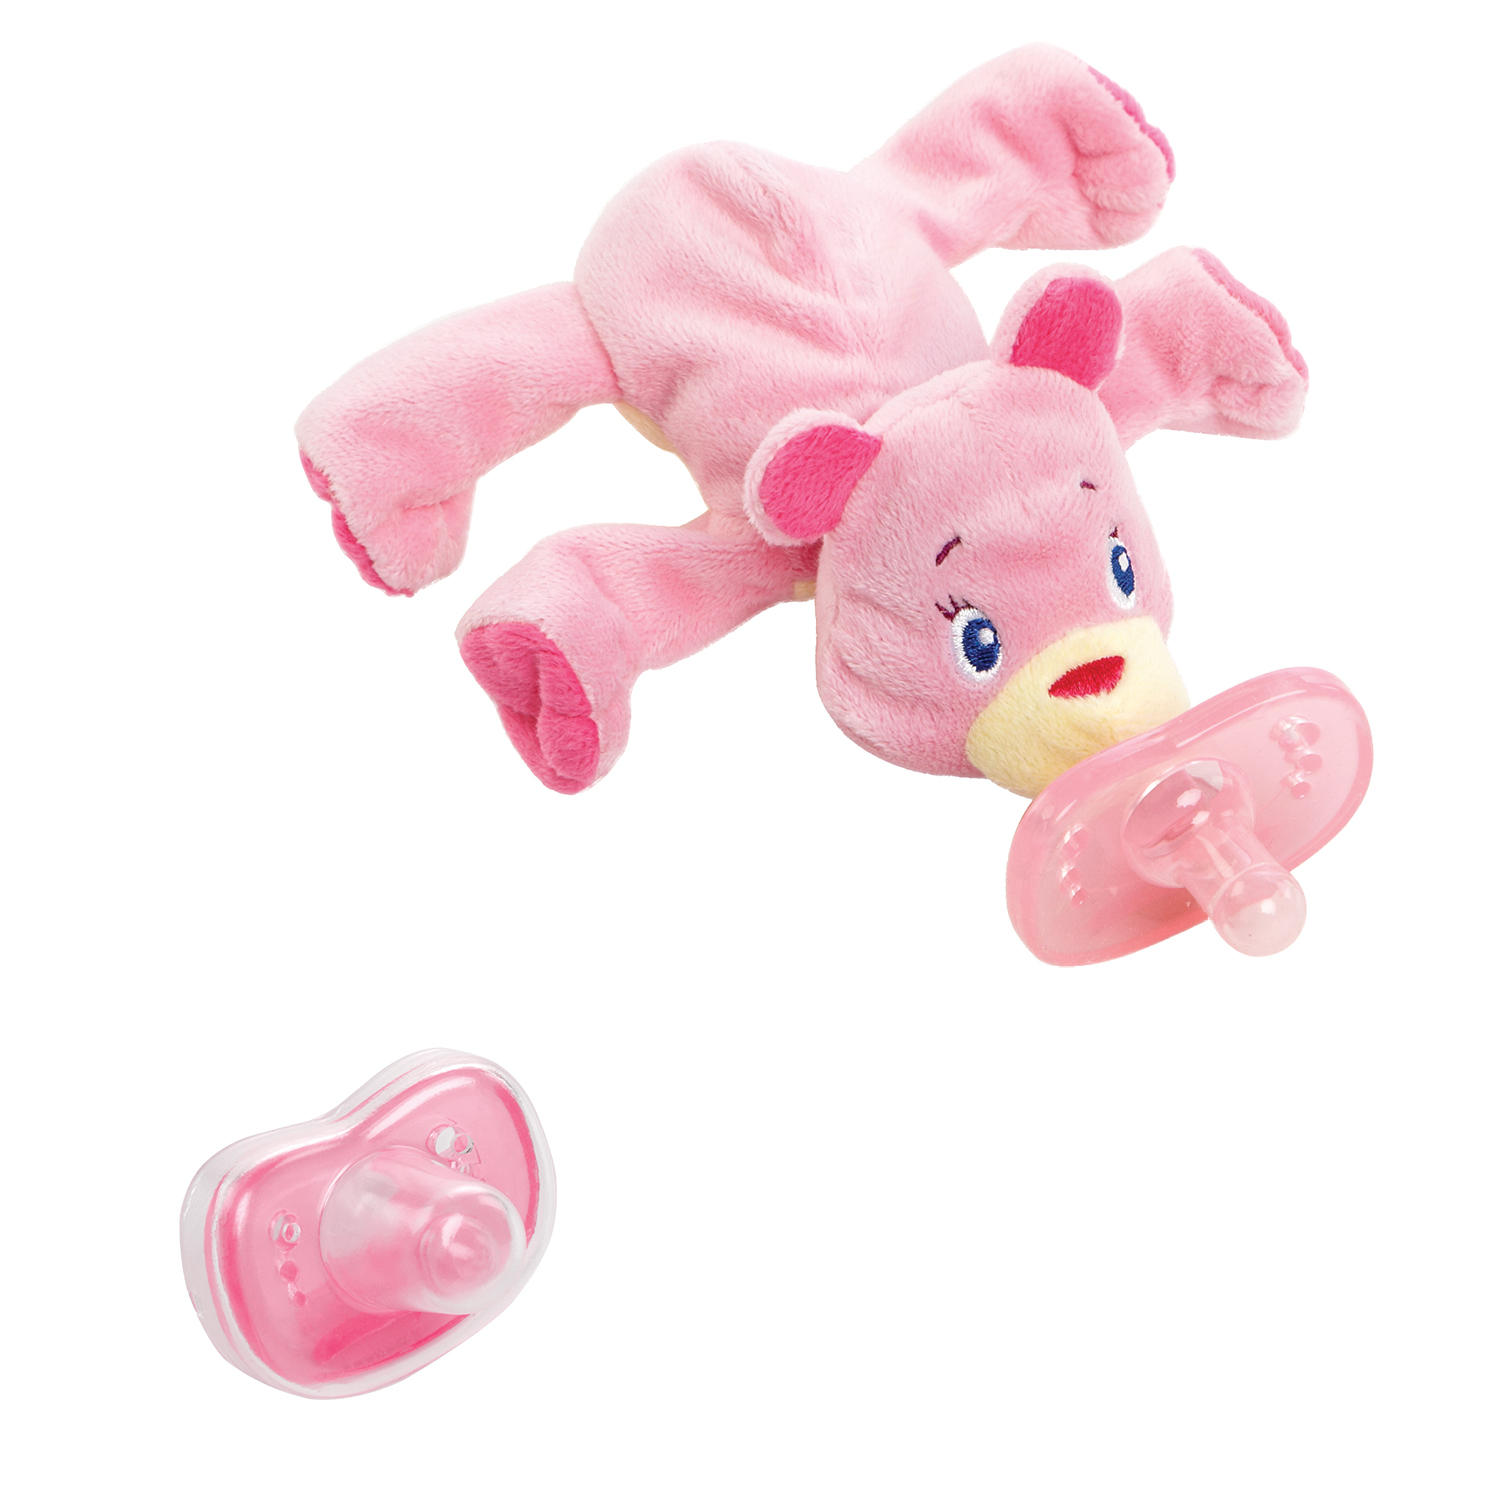 Cozy Coos Deluxe™ Pacifier – Pink Cub